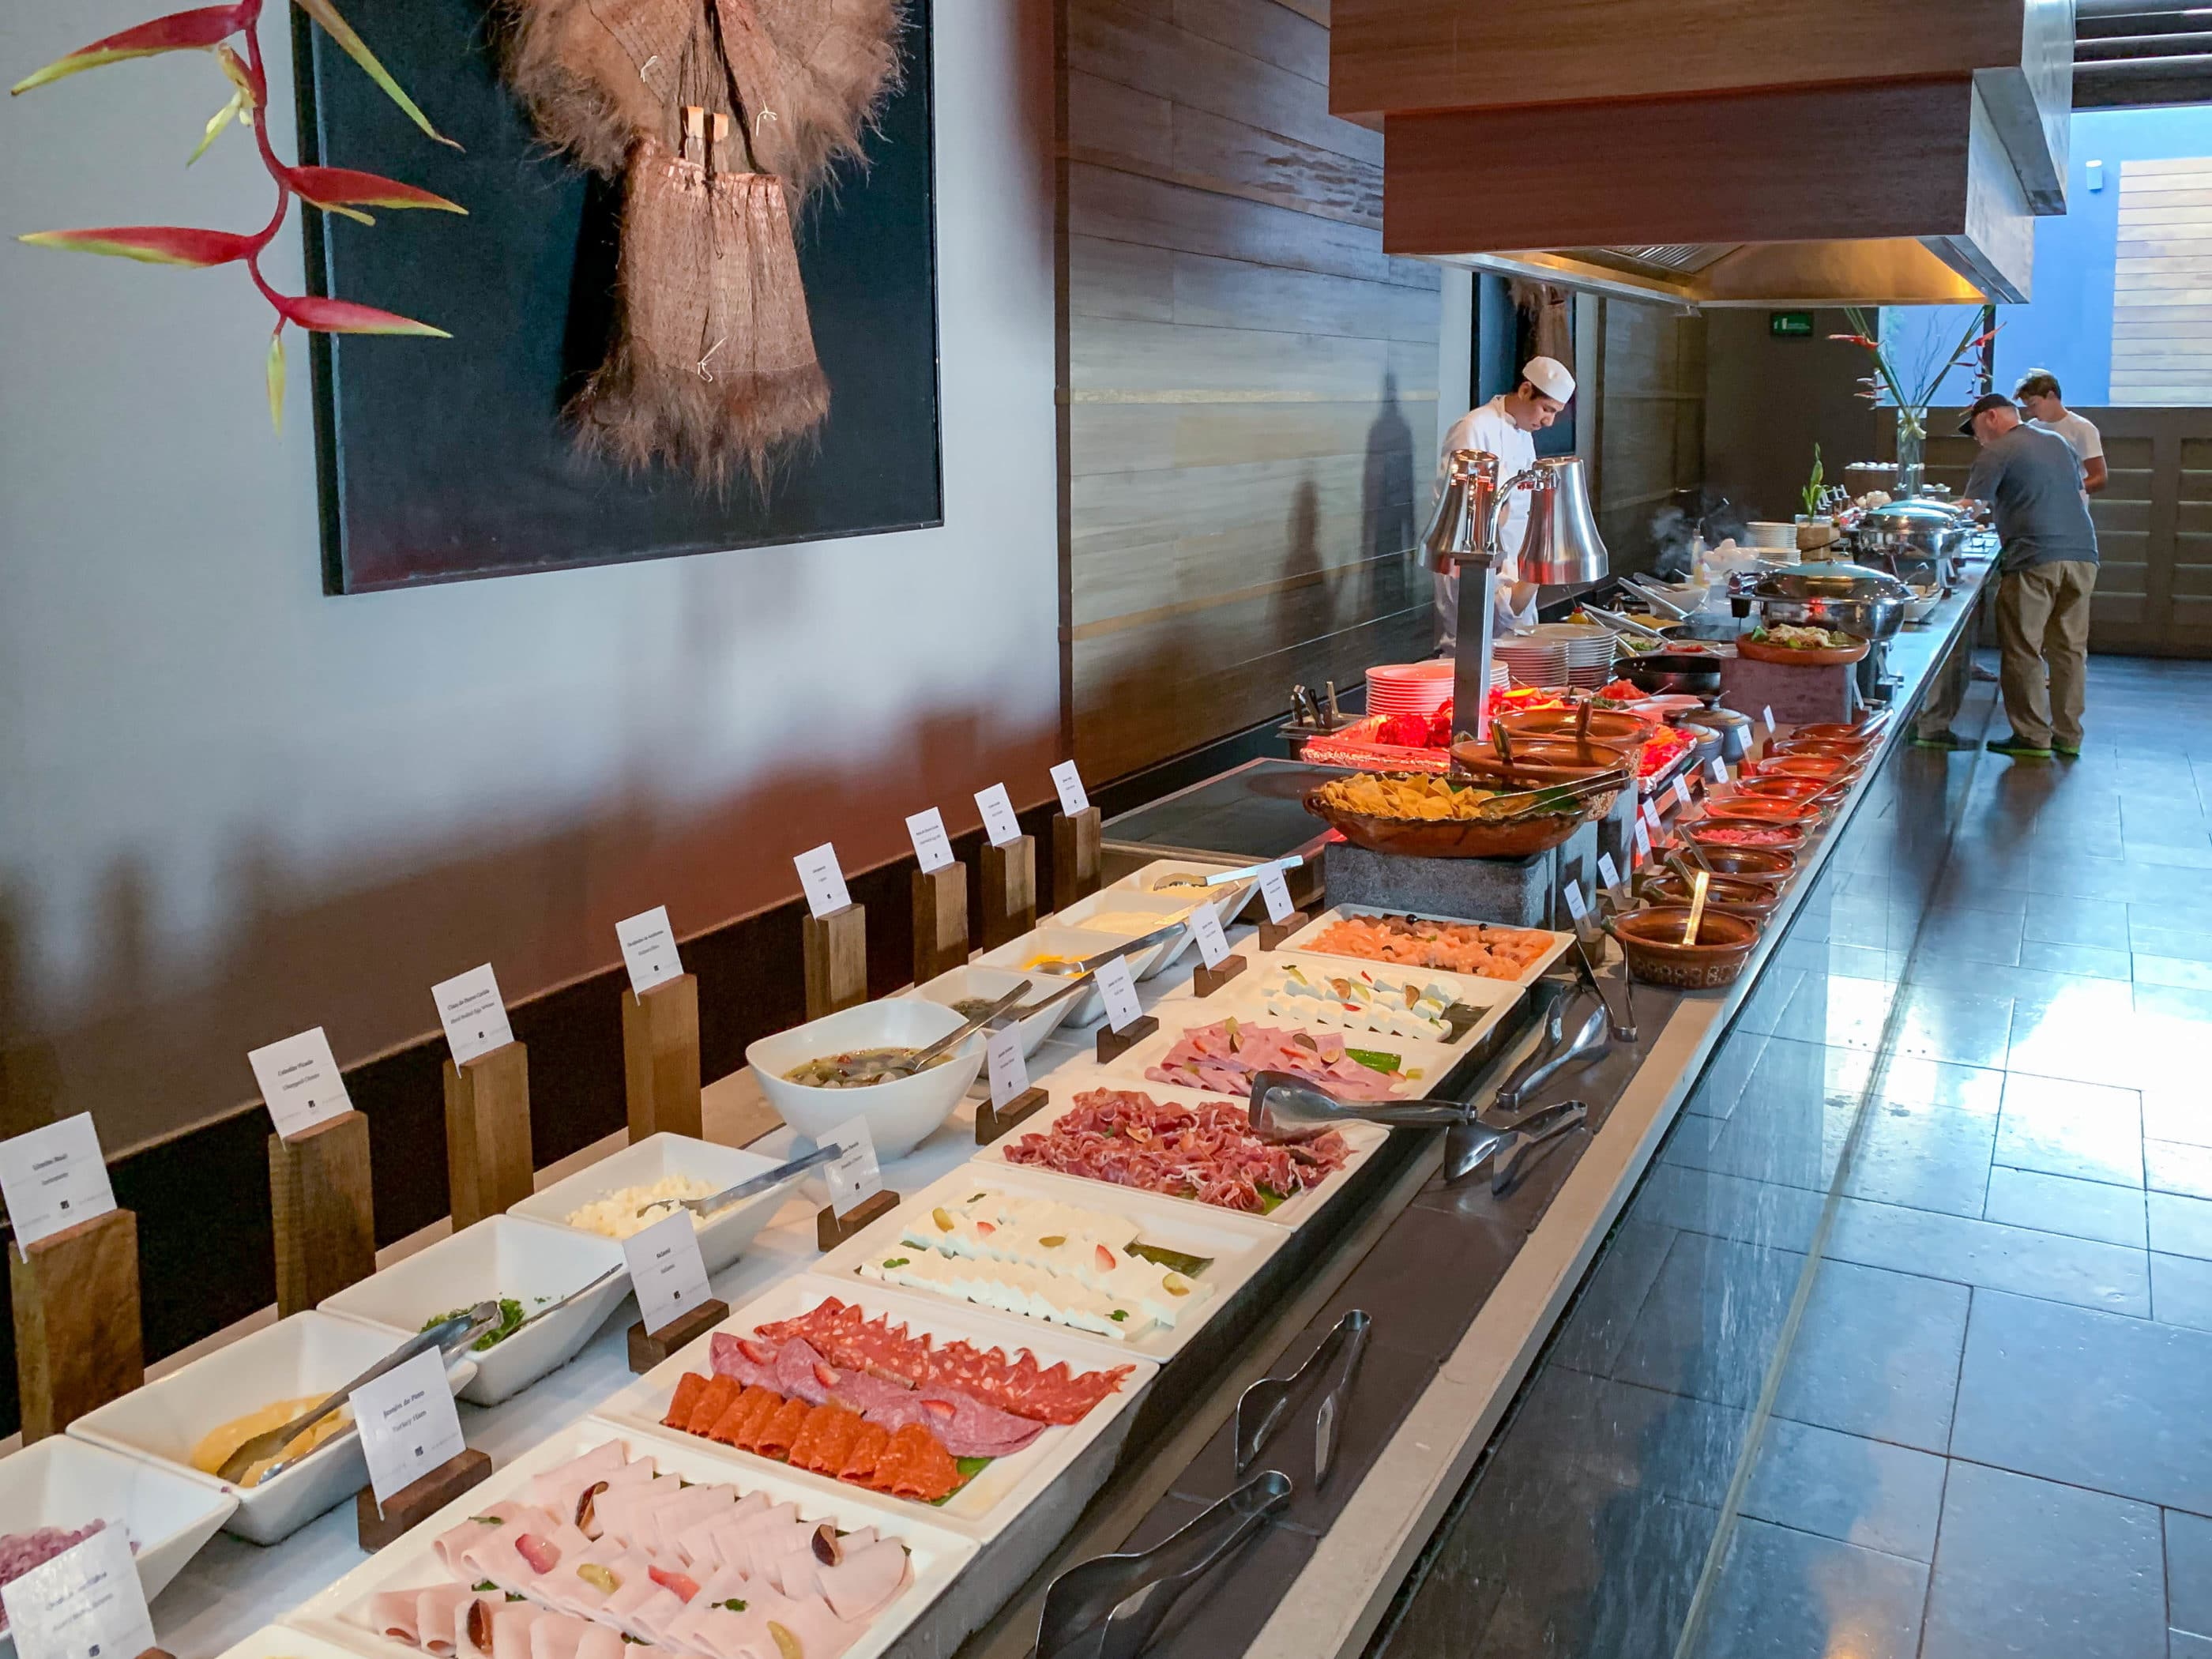 Part of the Nizuc breakfast buffet counter with cold cuts and a chef making pancakes.